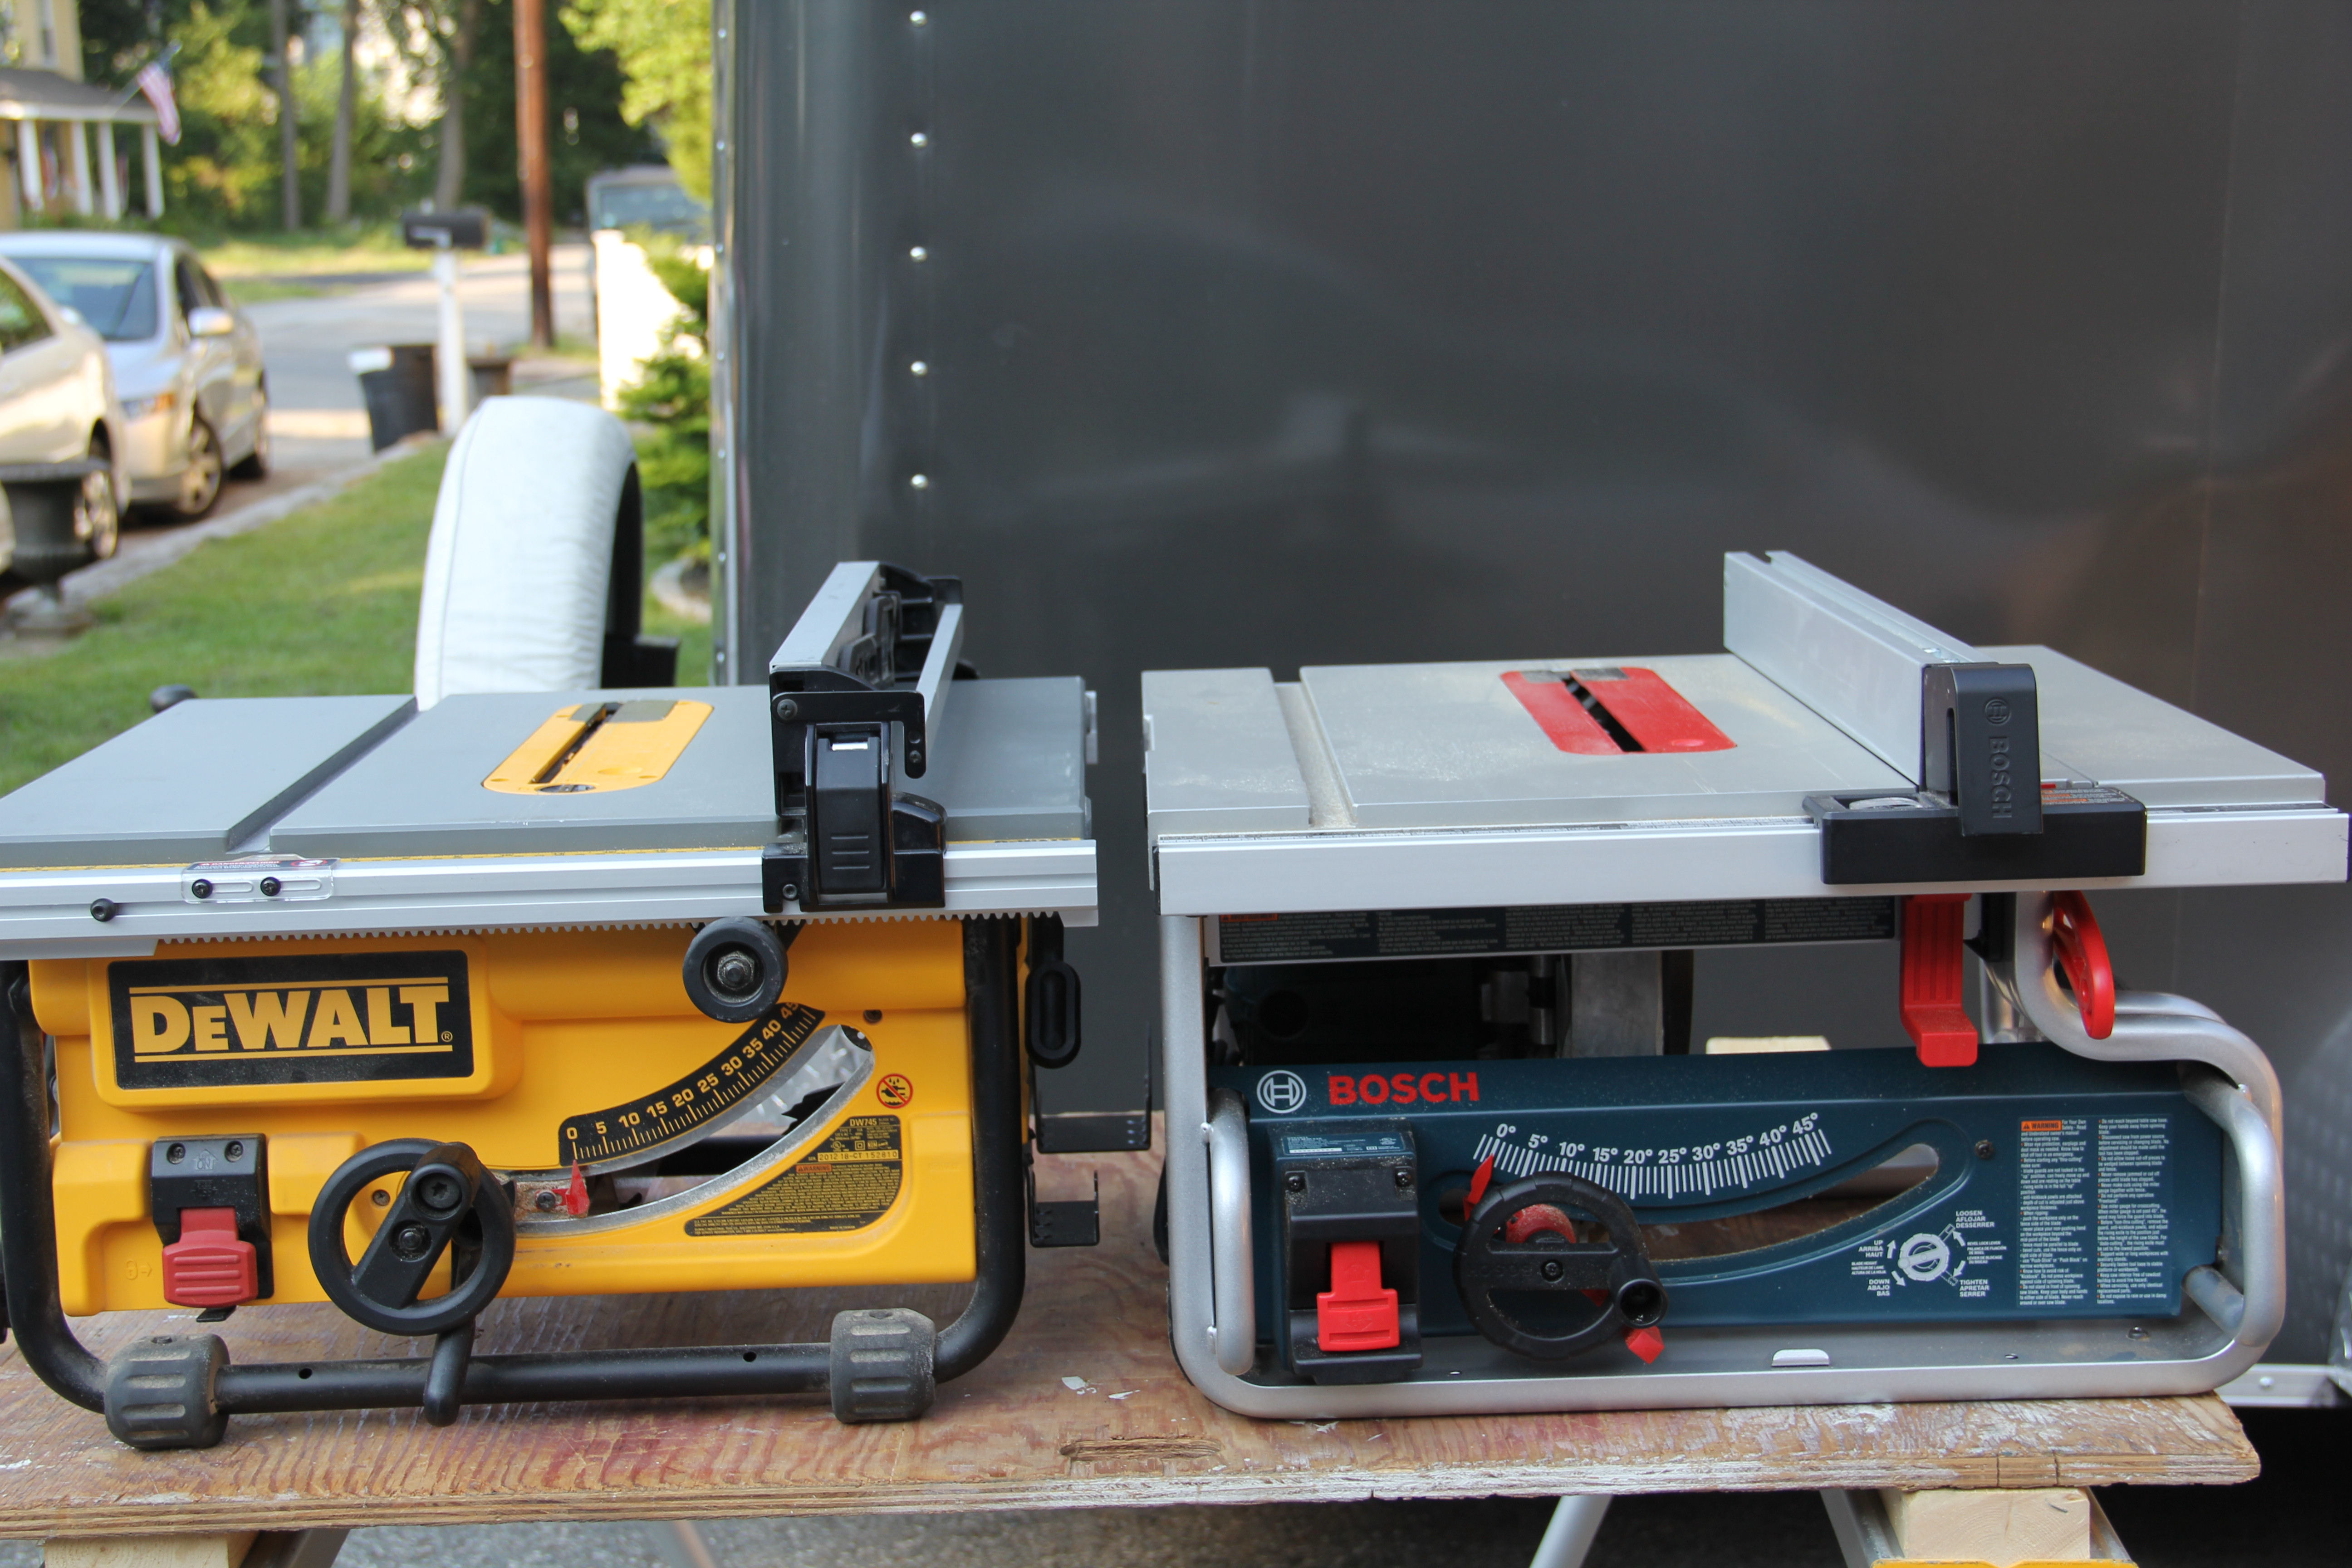 Dewalt vs bosch compact table saw comparison dewalt dw745 and bosch gts 1031 10 inch tables saws greentooth